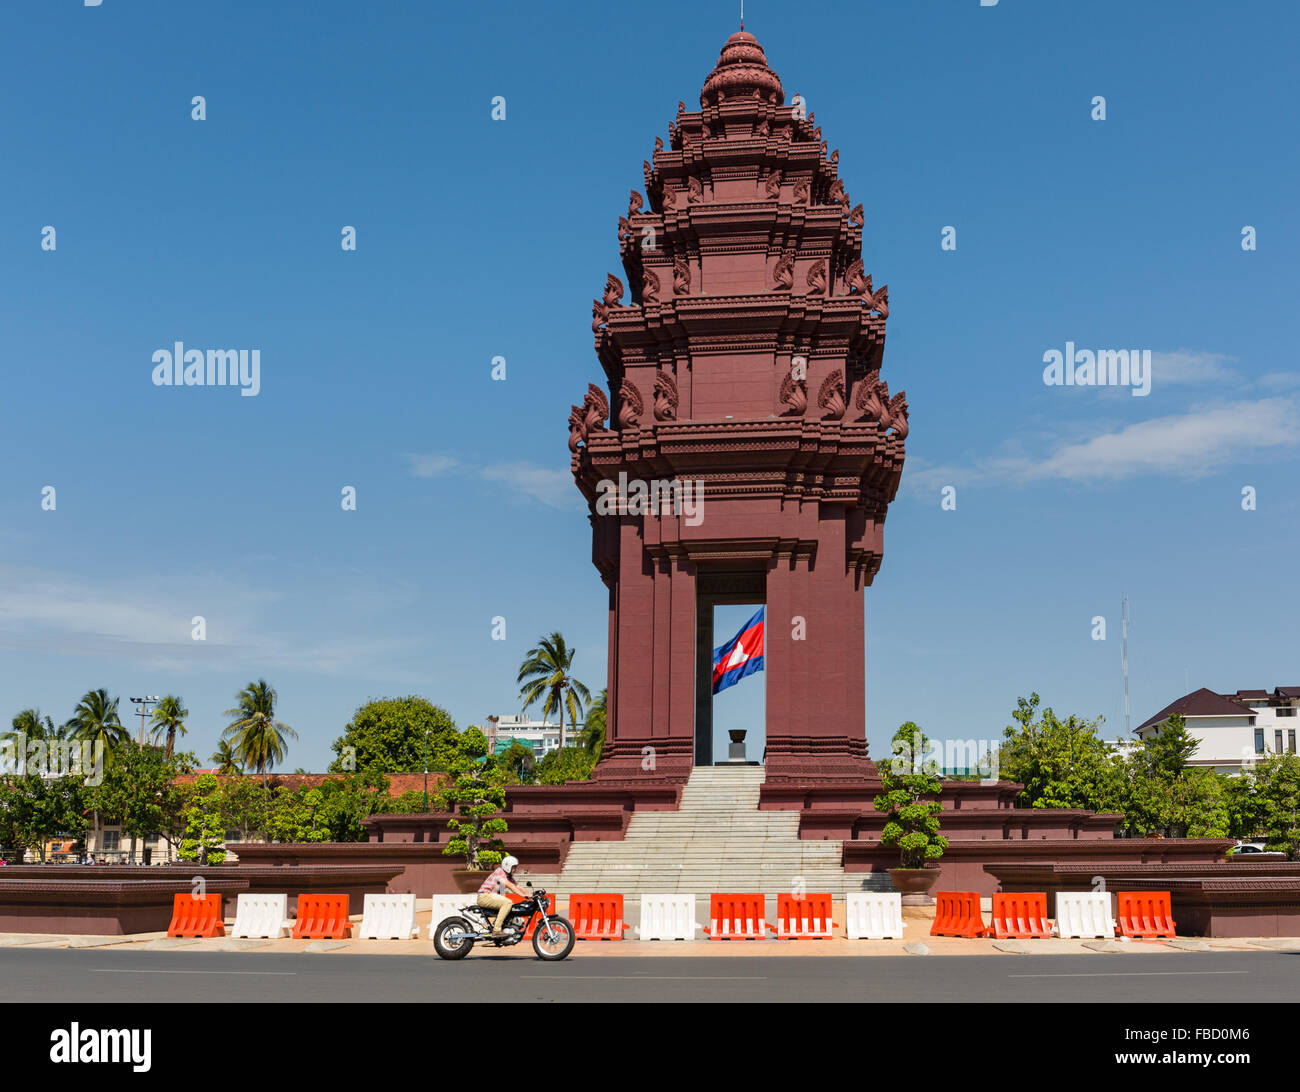 Roundabout at the Independence Monument, Motorcycle at the Phnom Penh, Cambodia - Stock Image